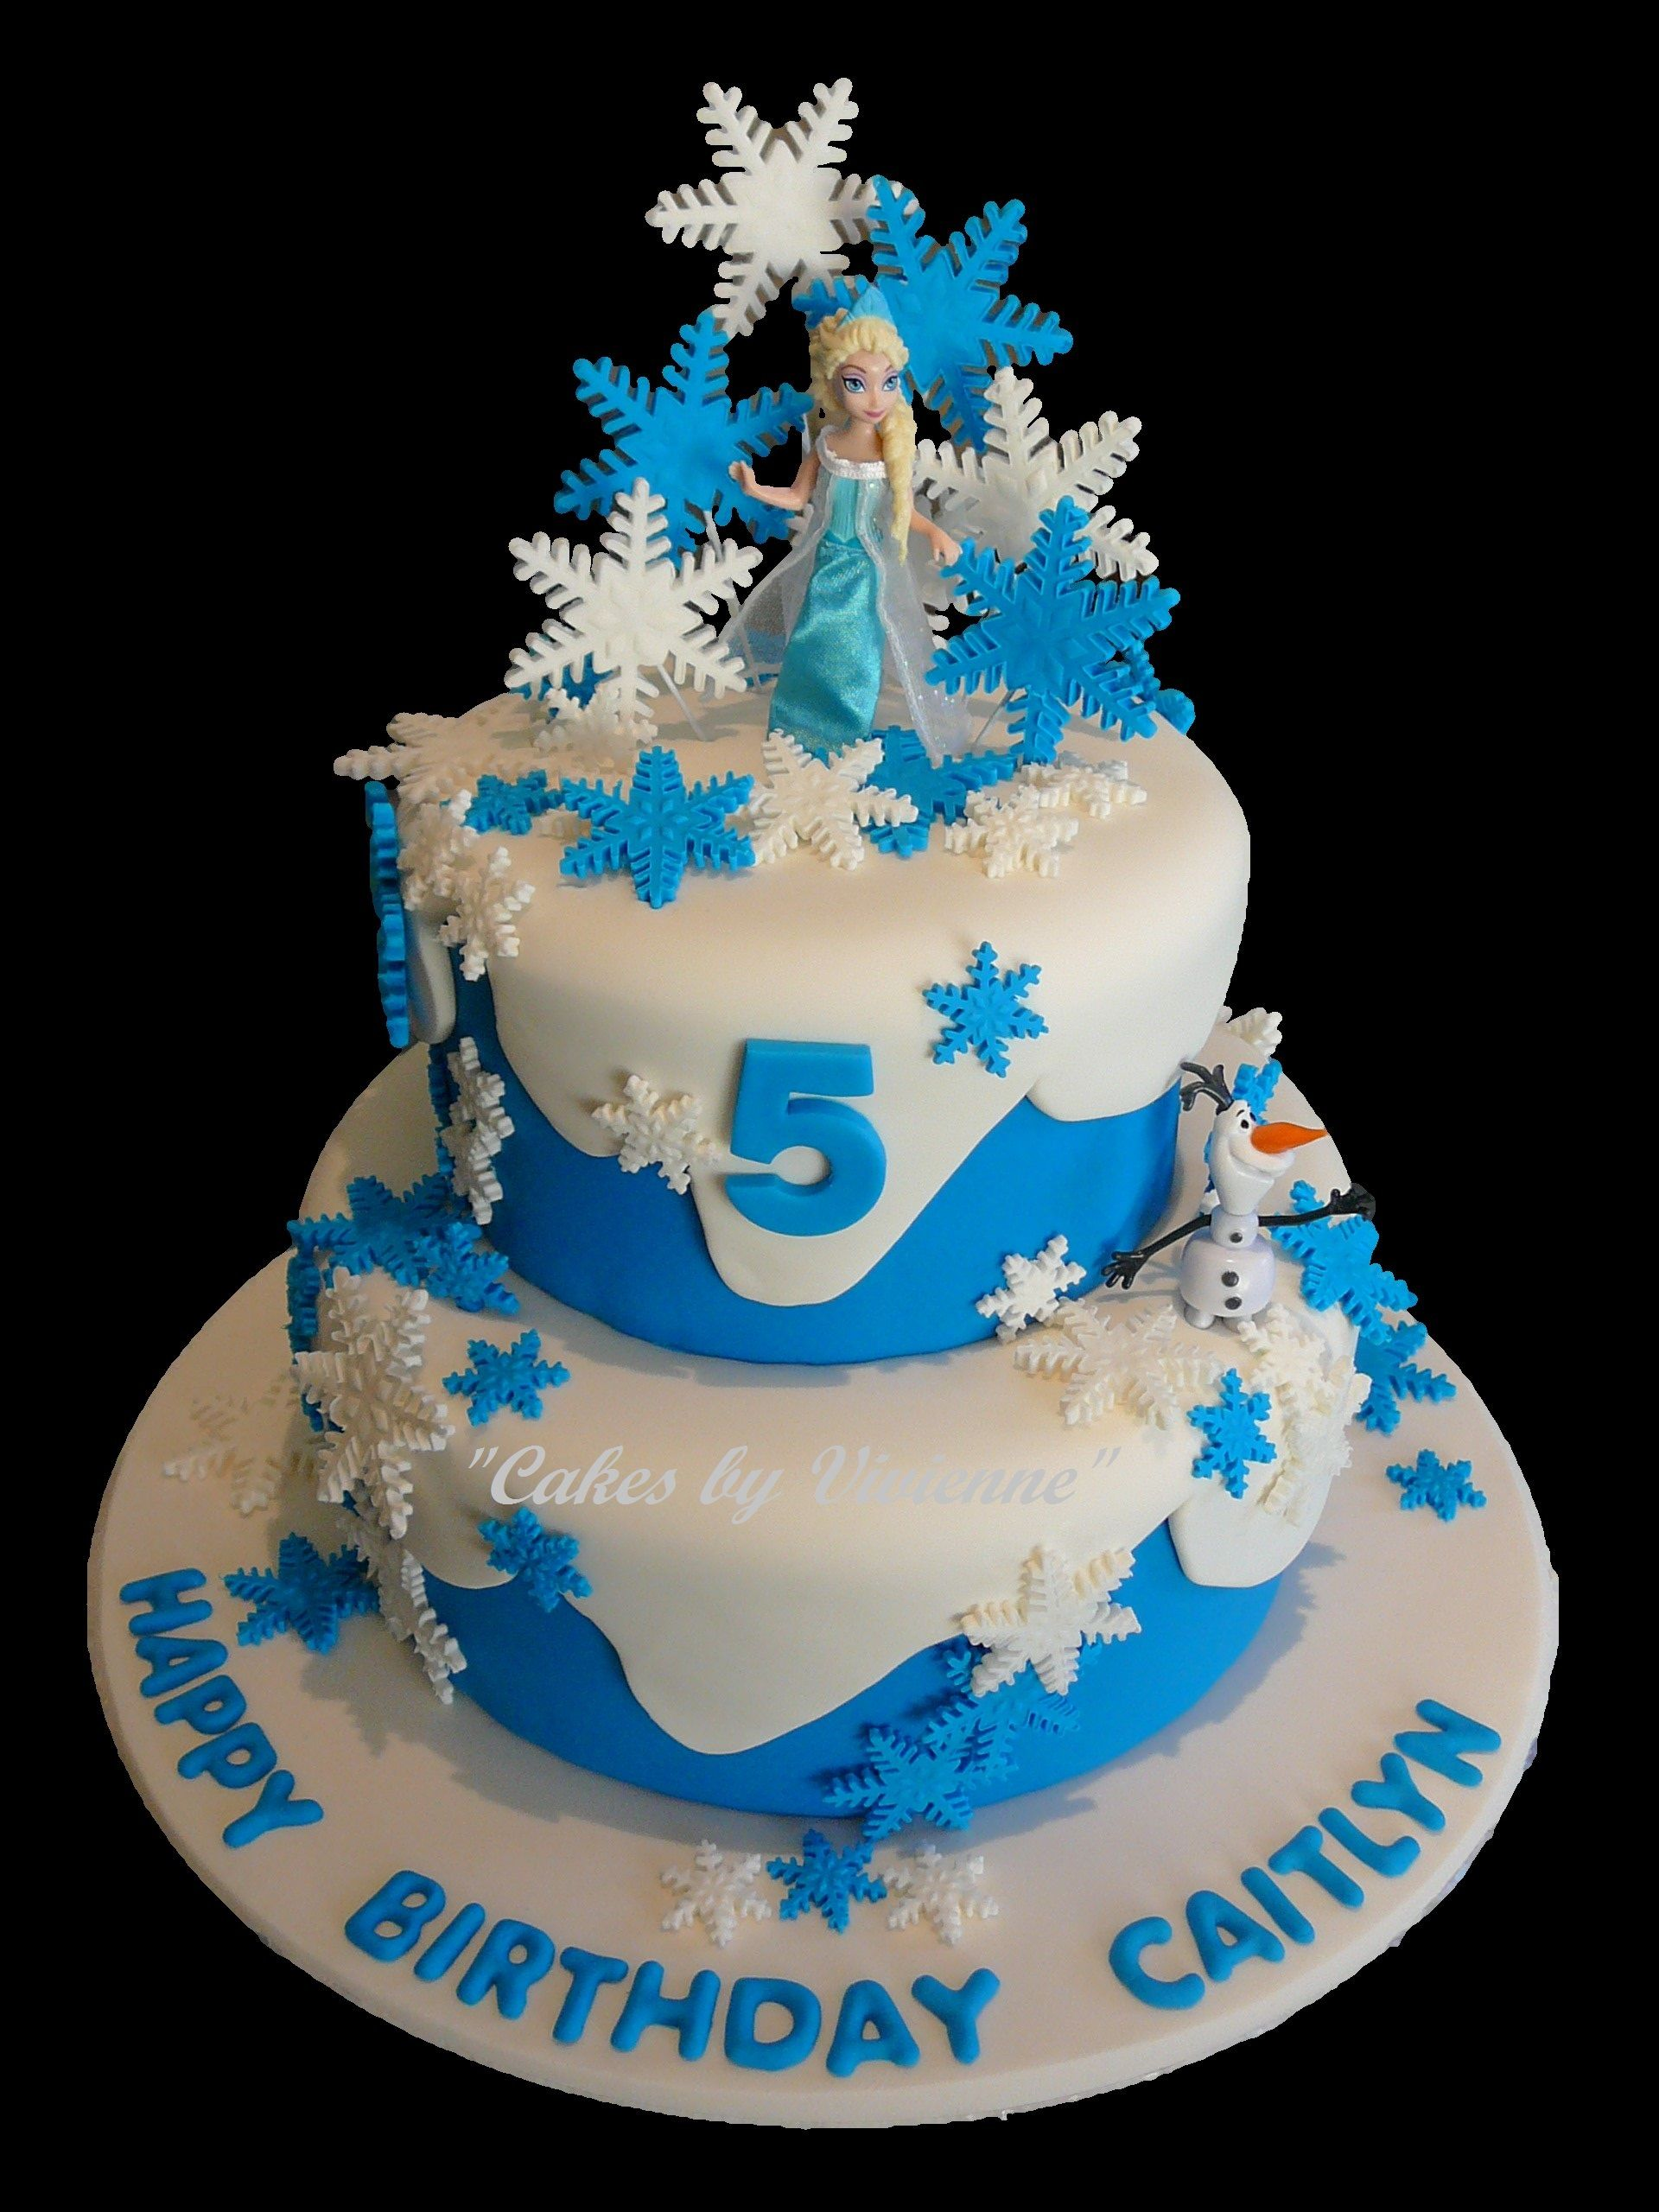 Birthday Cakes For Frozen ~ Frozen themed birthday cake for a year old featuring elsa olaf kenzie s